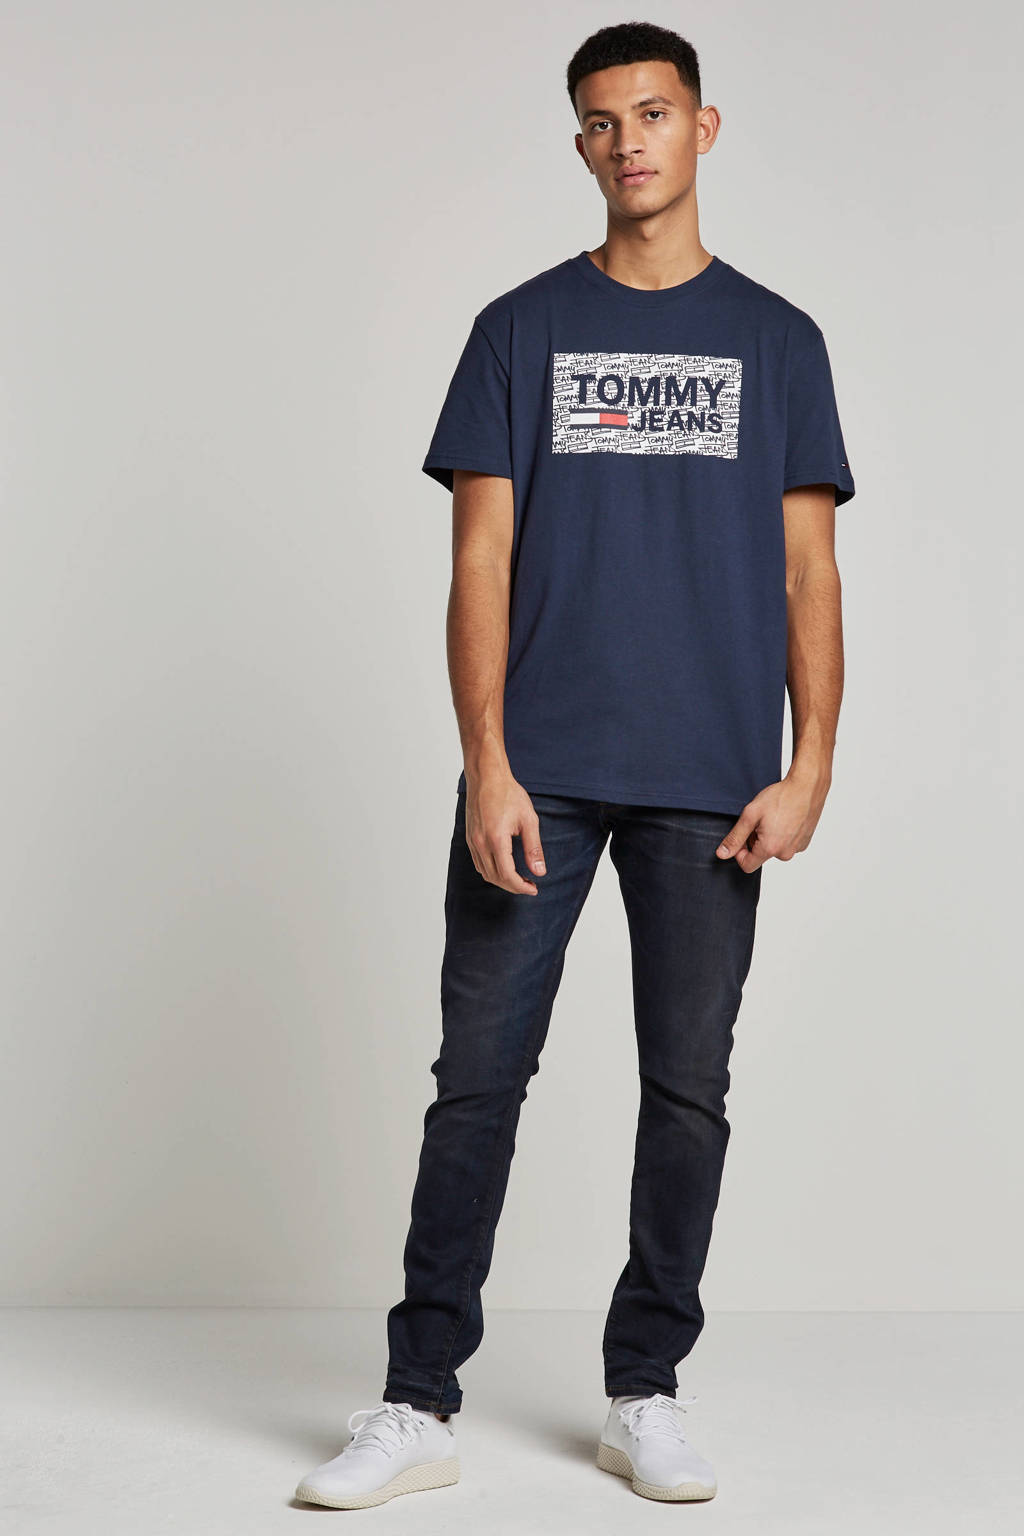 Tommy Jeans T-shirt, Donkerblauw